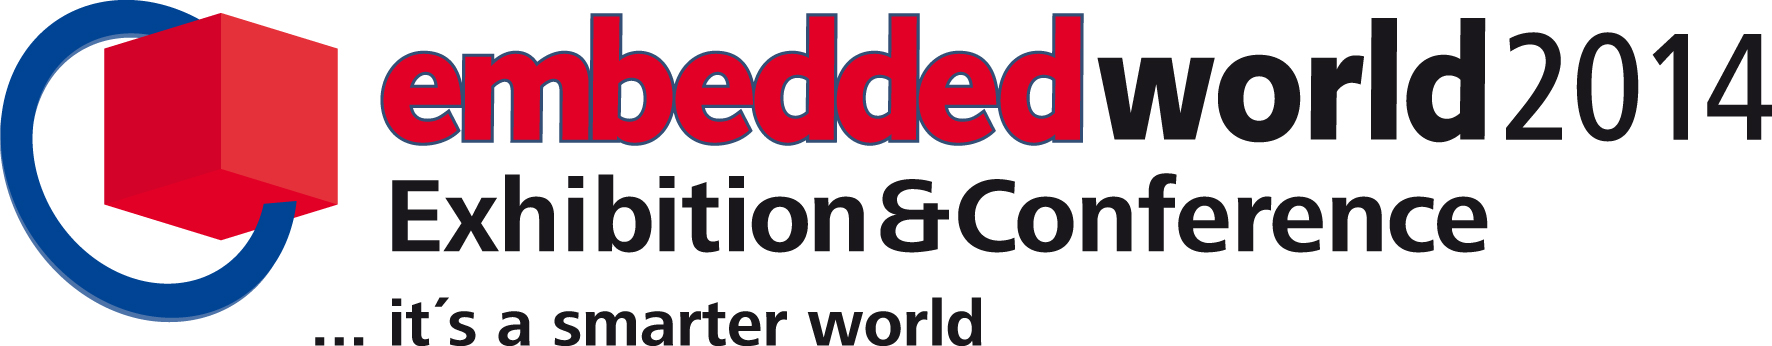 Logo Embedded World Exhibition & Conference